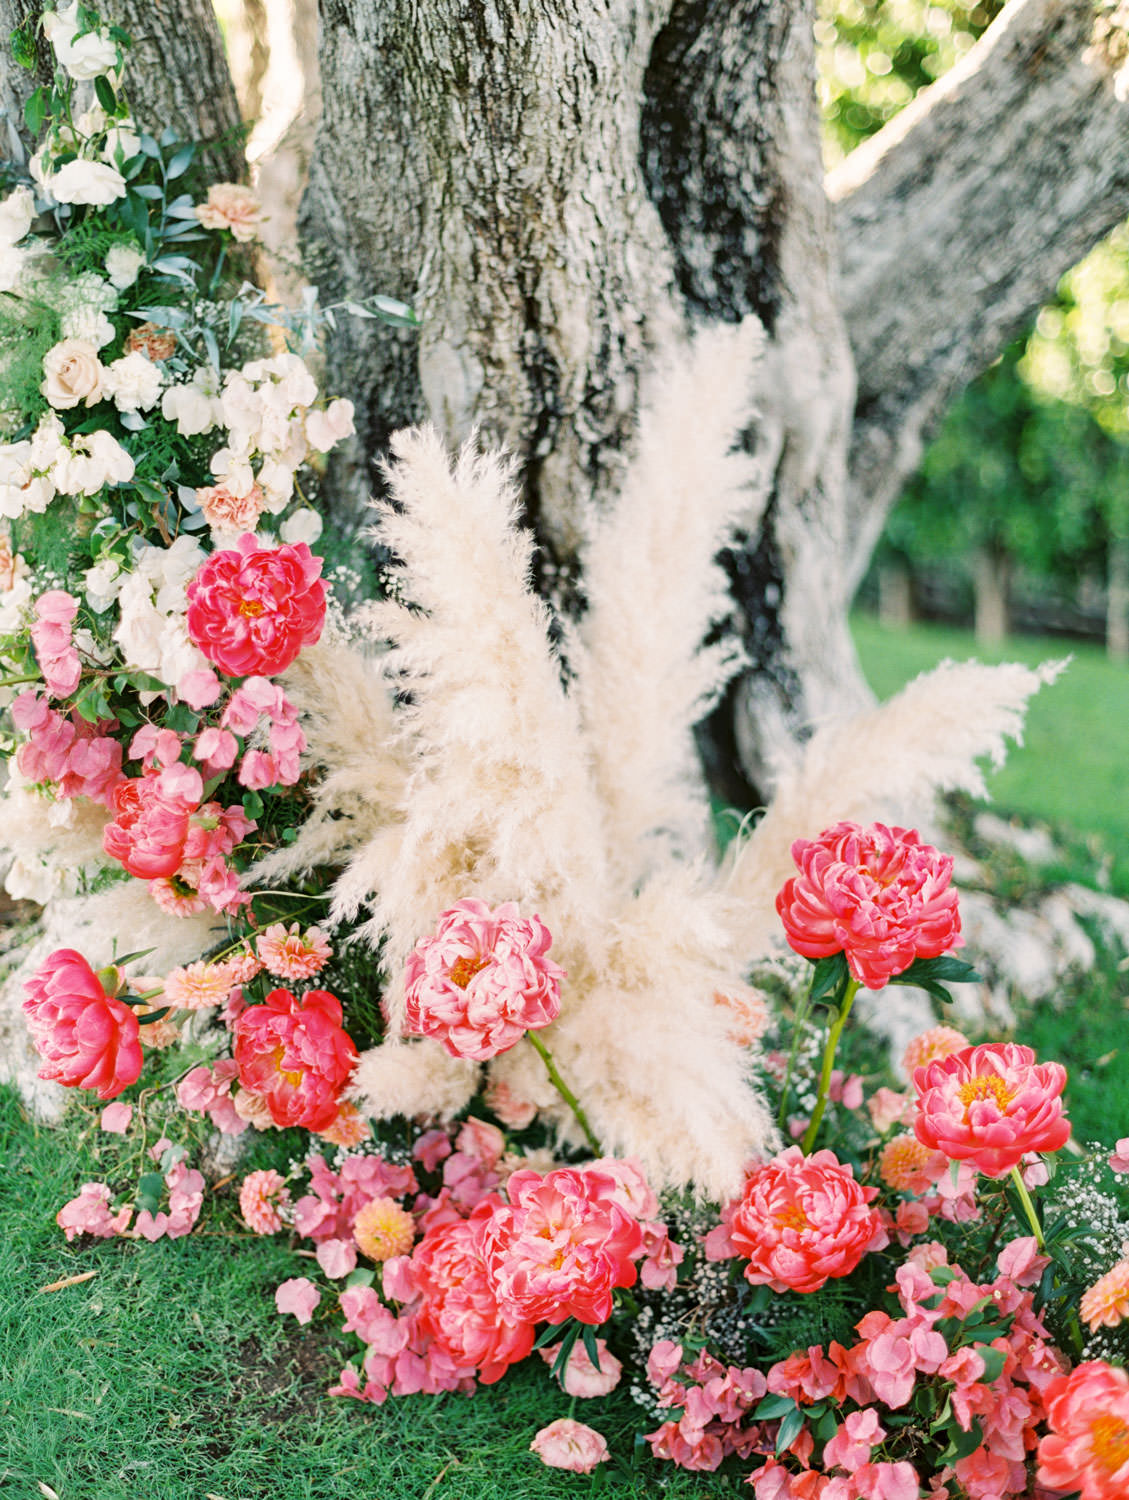 Large tree with hanging floral arrangements and pink peonies and pampas grass spiraling up the trunk. Miramonte Resort ceremony on Miramonte Green. Film photography by Cavin Elizabeth.